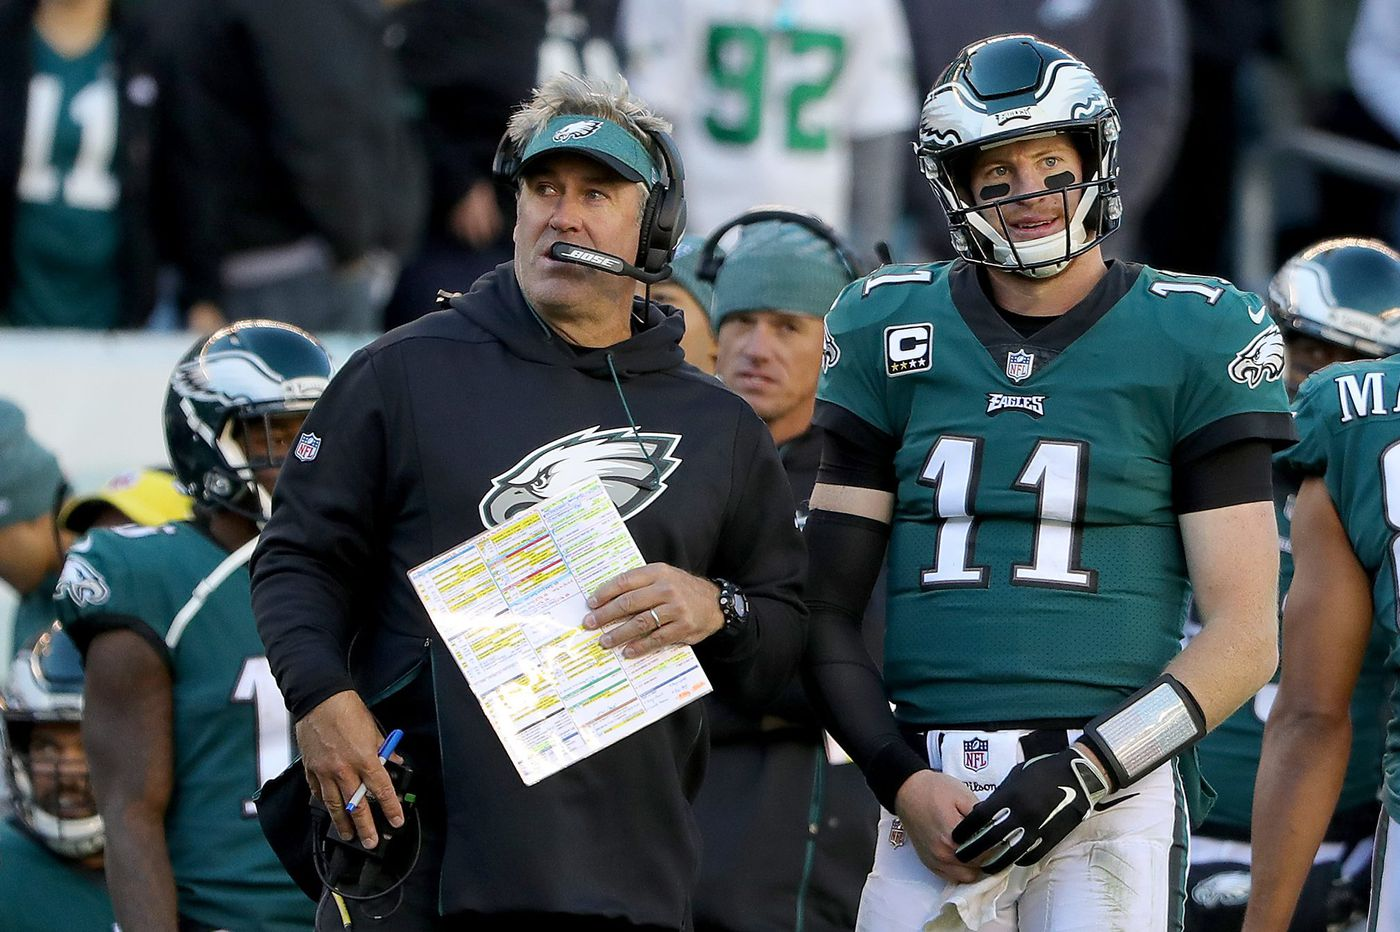 Doug Pederson says 'the pressure is off' and 'anything is possible' following Eagles' 21-17 loss to Panthers